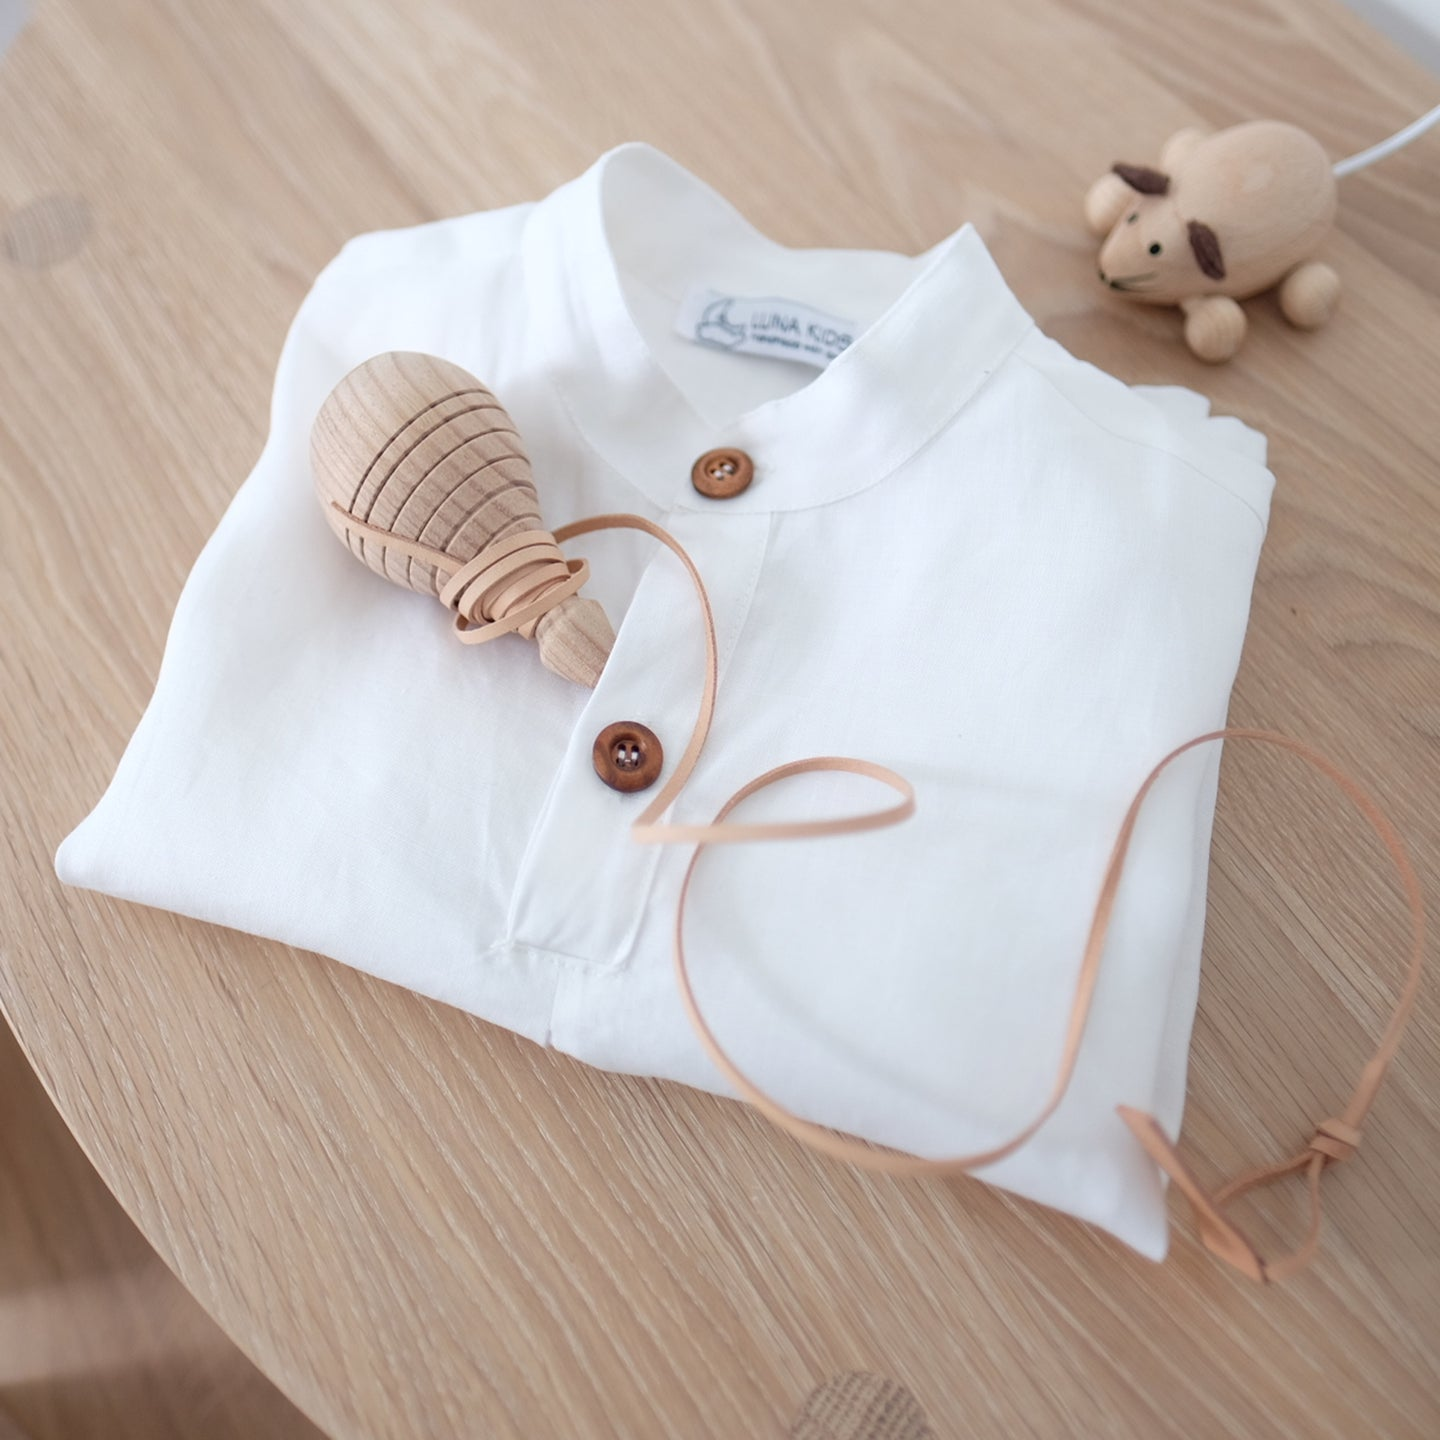 GUILLE SHIRT - White Linen